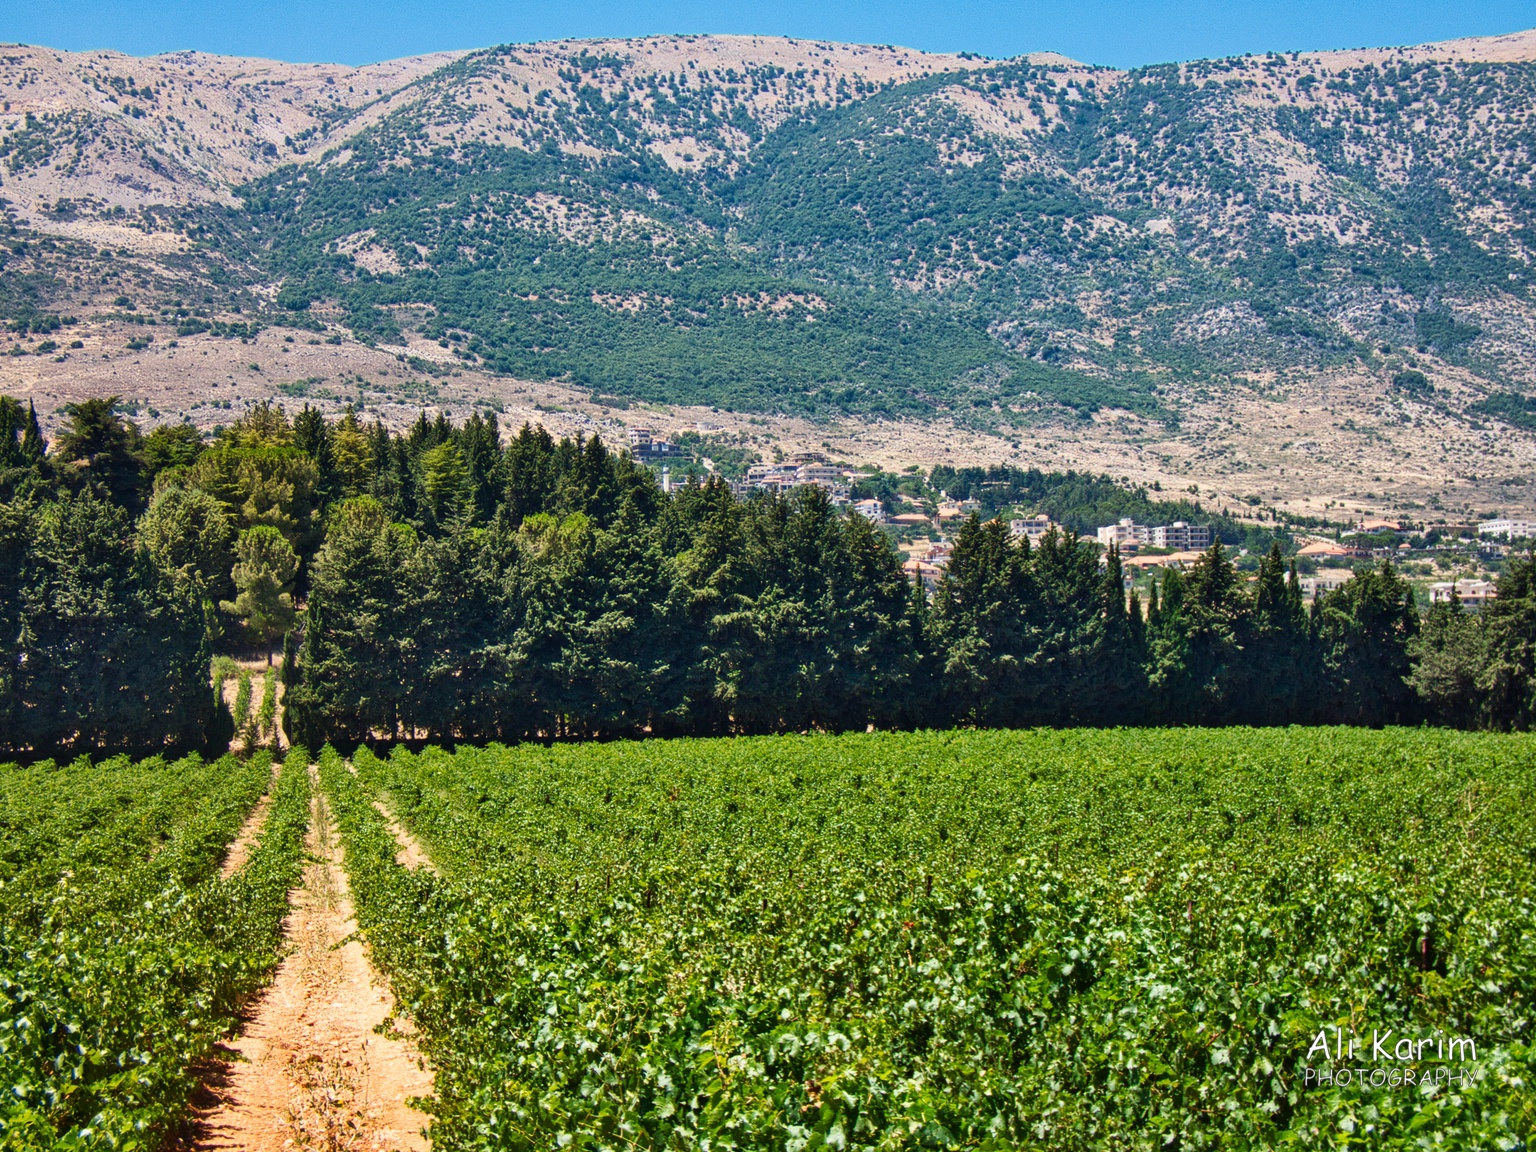 Bekaa Valley Winery, Chouf Mountains & the Druze Vines of Chateau Kefraya and the Lebanon Mountains